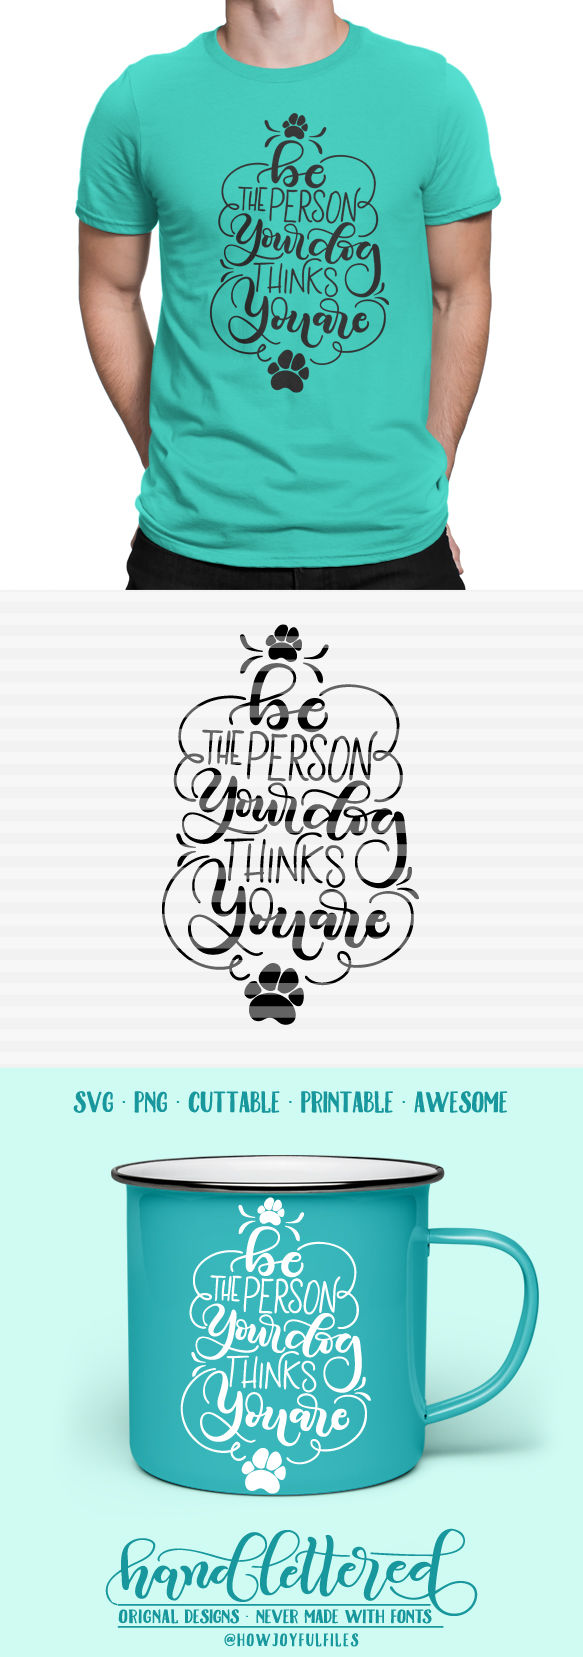 Be The Person Your Dog Thinks You Are Svg Pdf Dxf Hand Drawn Lettered Cut File Graphic Overlay Ask A Question By Howjoyful Files Thehungryjpeg Com